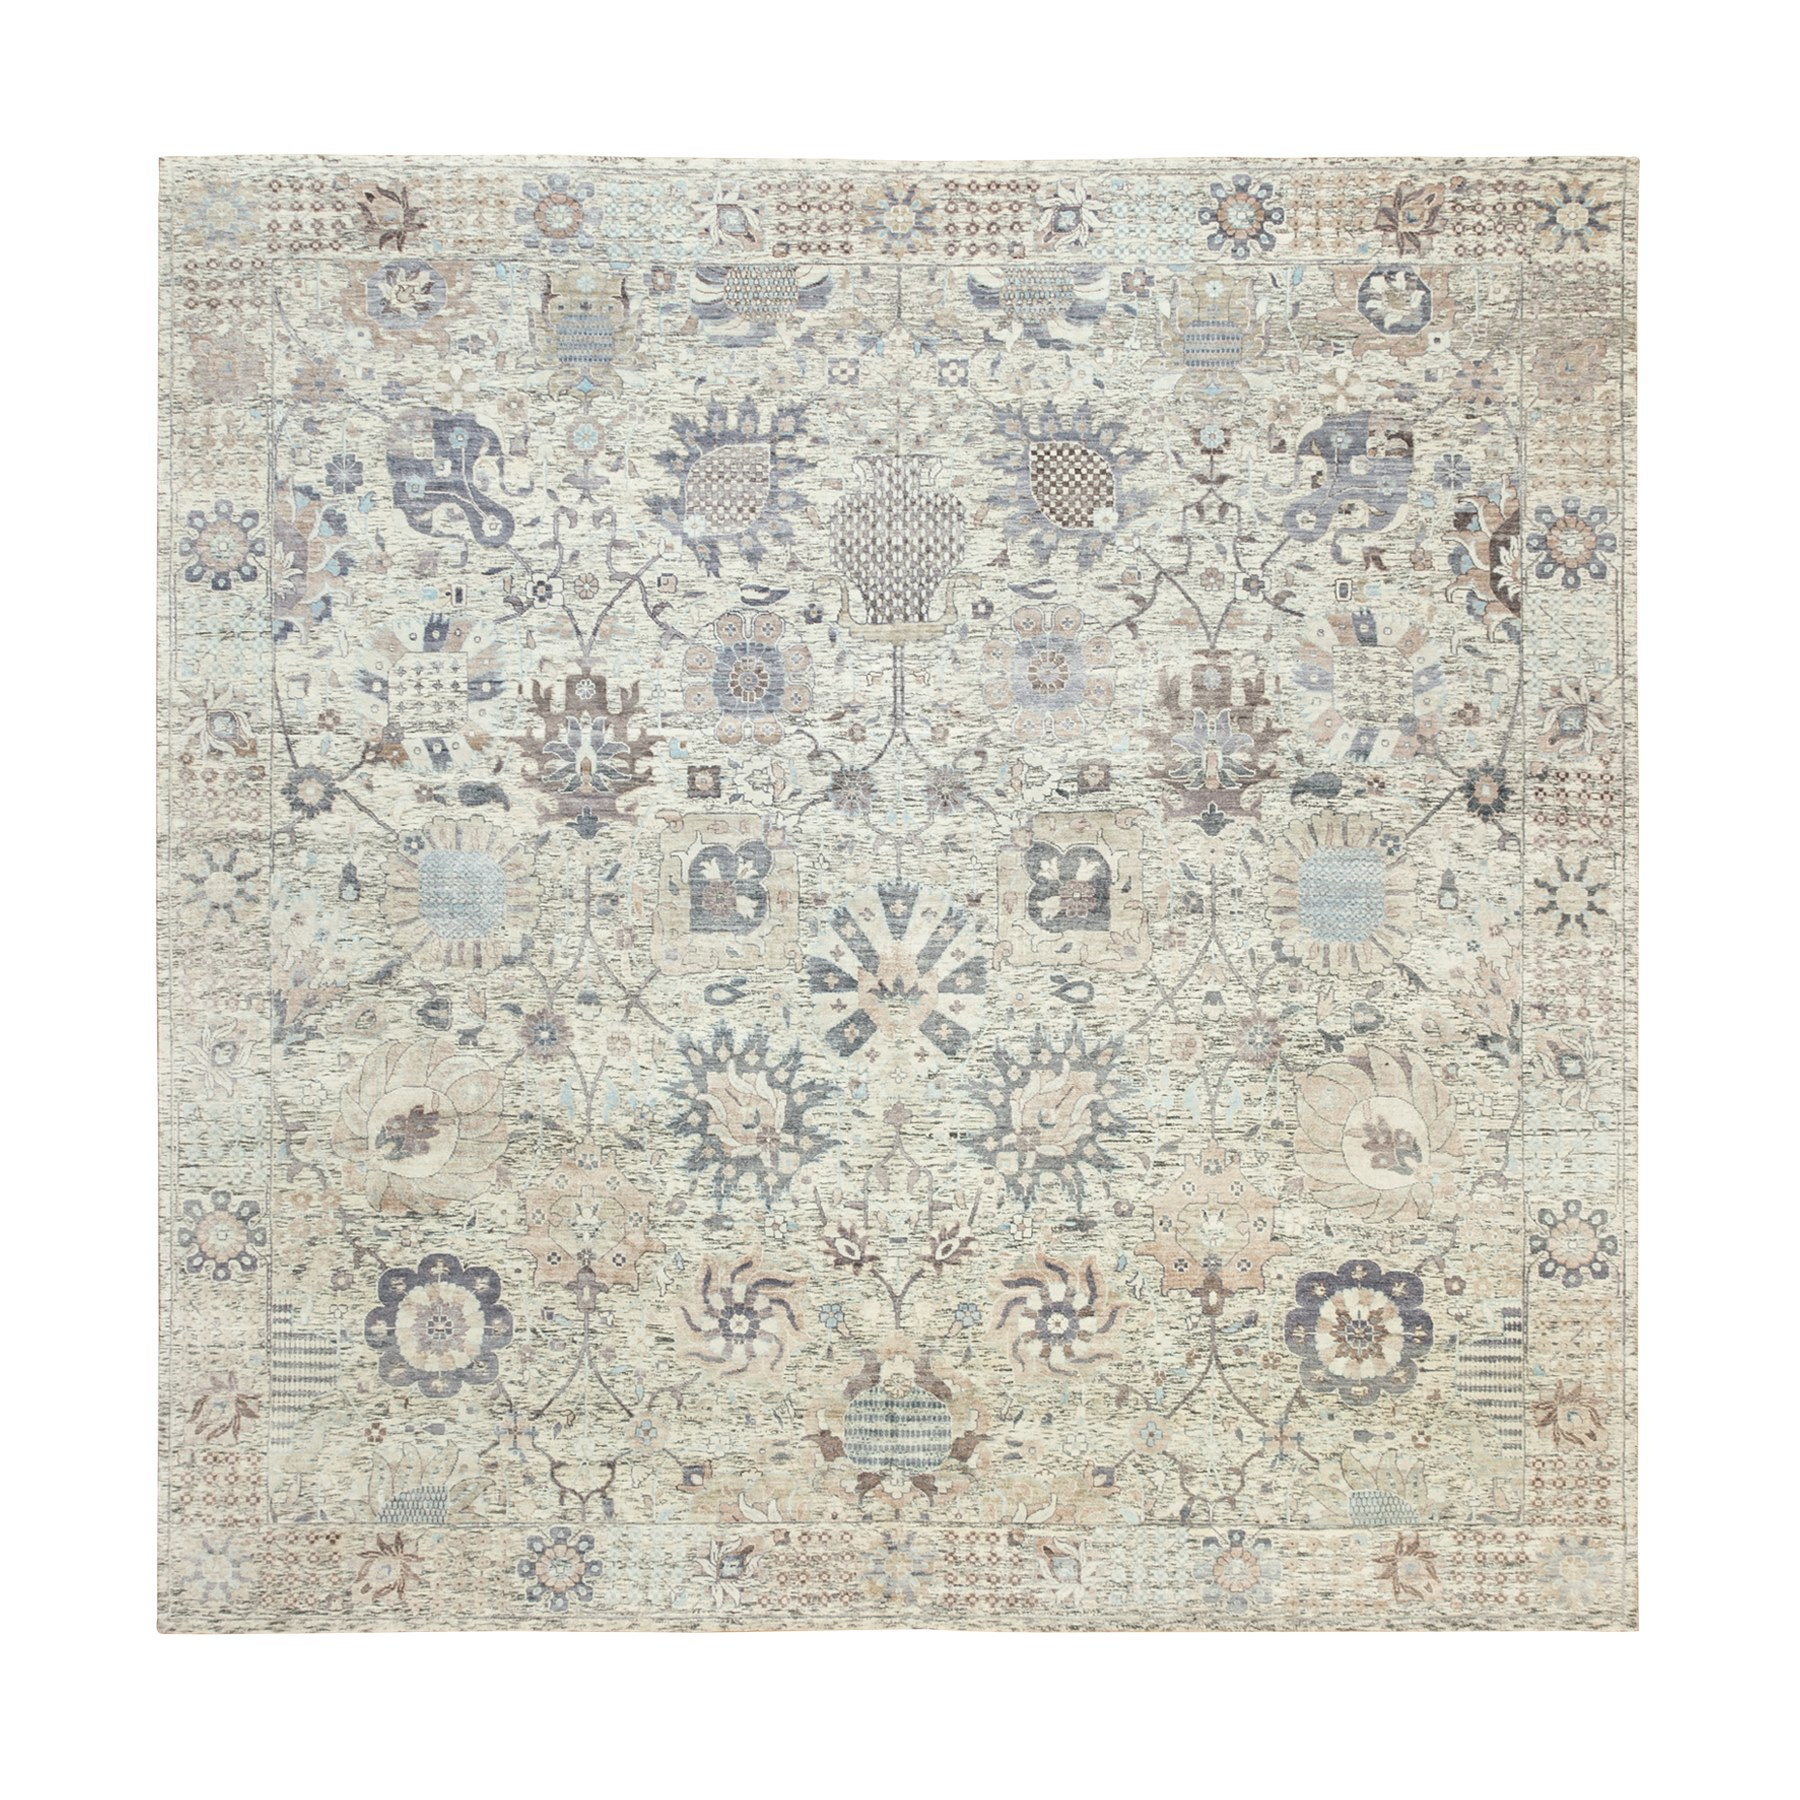 Transitional Rugs LUV530496